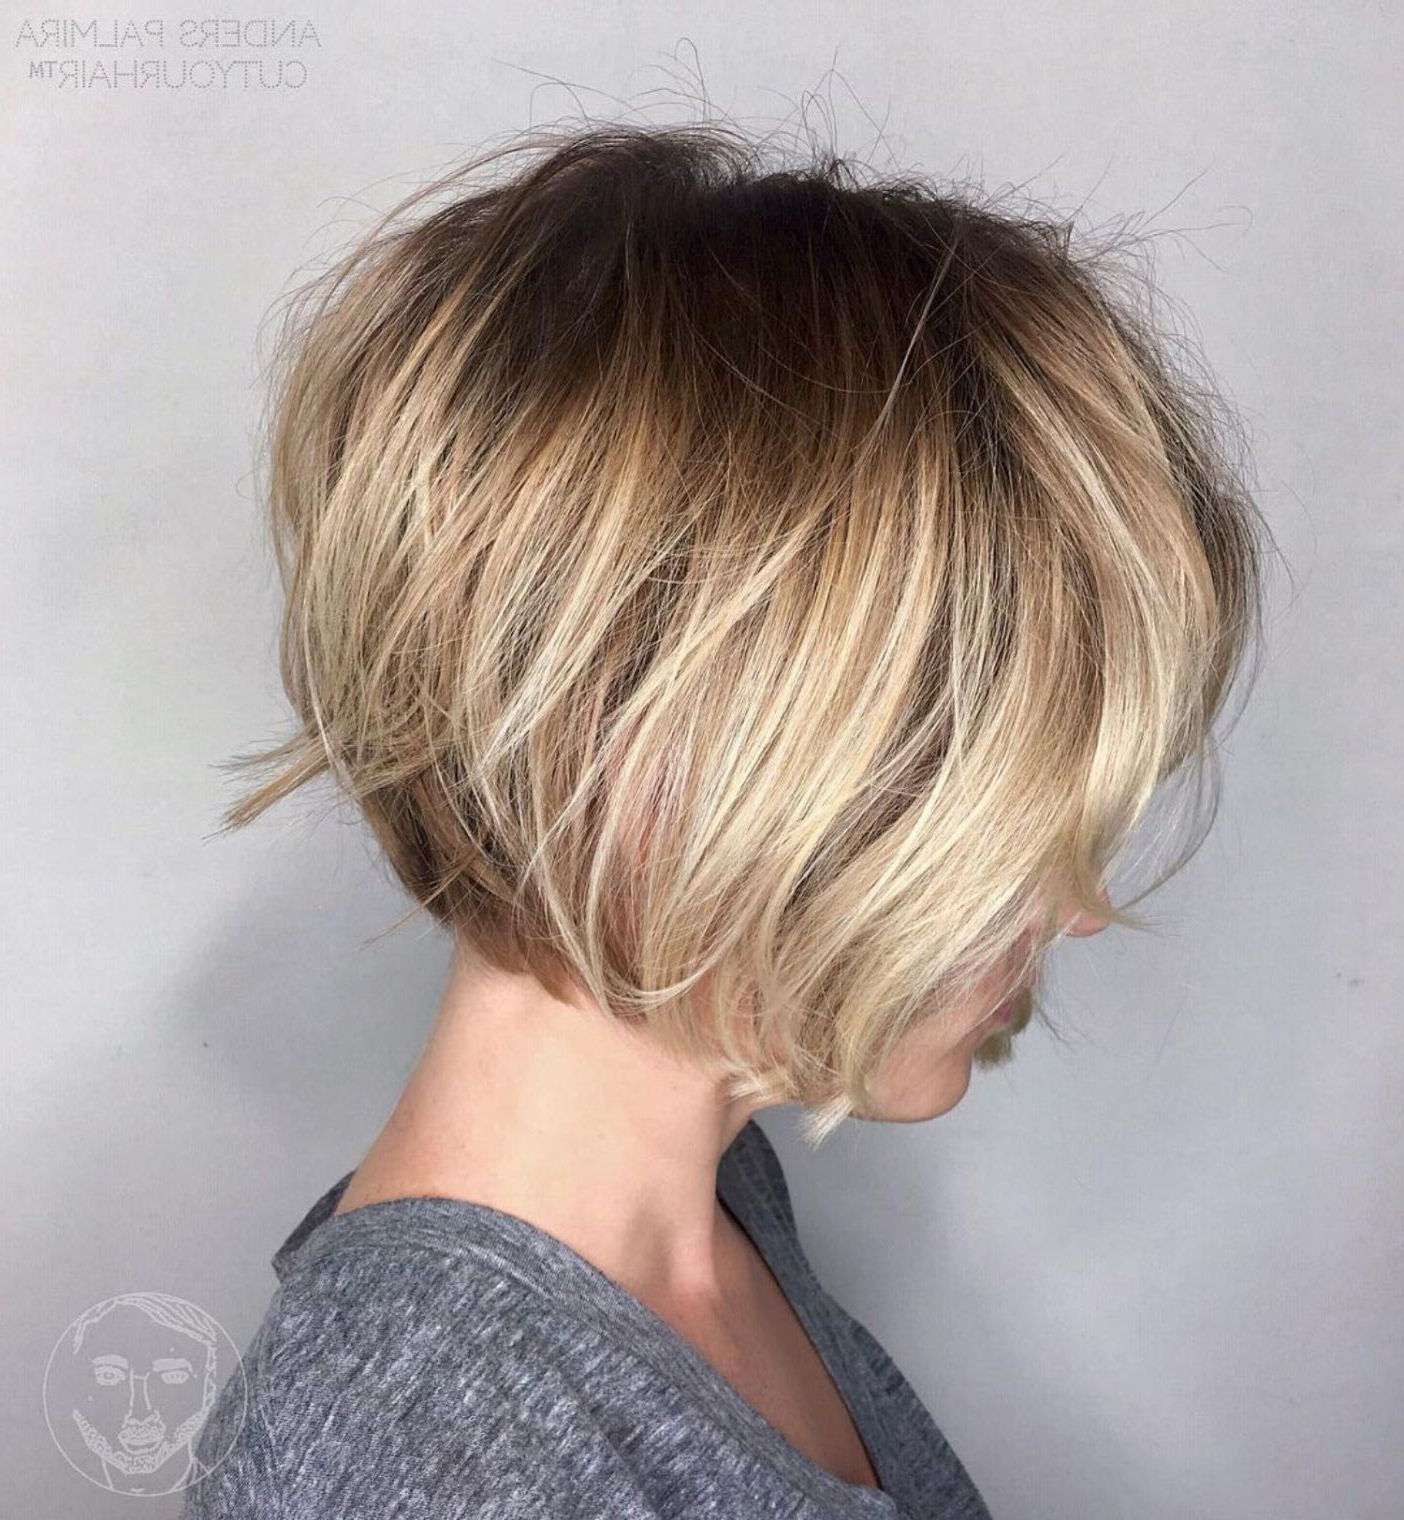 70 Winning Looks With Bob Haircuts For Fine Hair In 2018 | Hair In Stacked Blonde Balayage Pixie Hairstyles For Brunettes (Gallery 9 of 20)